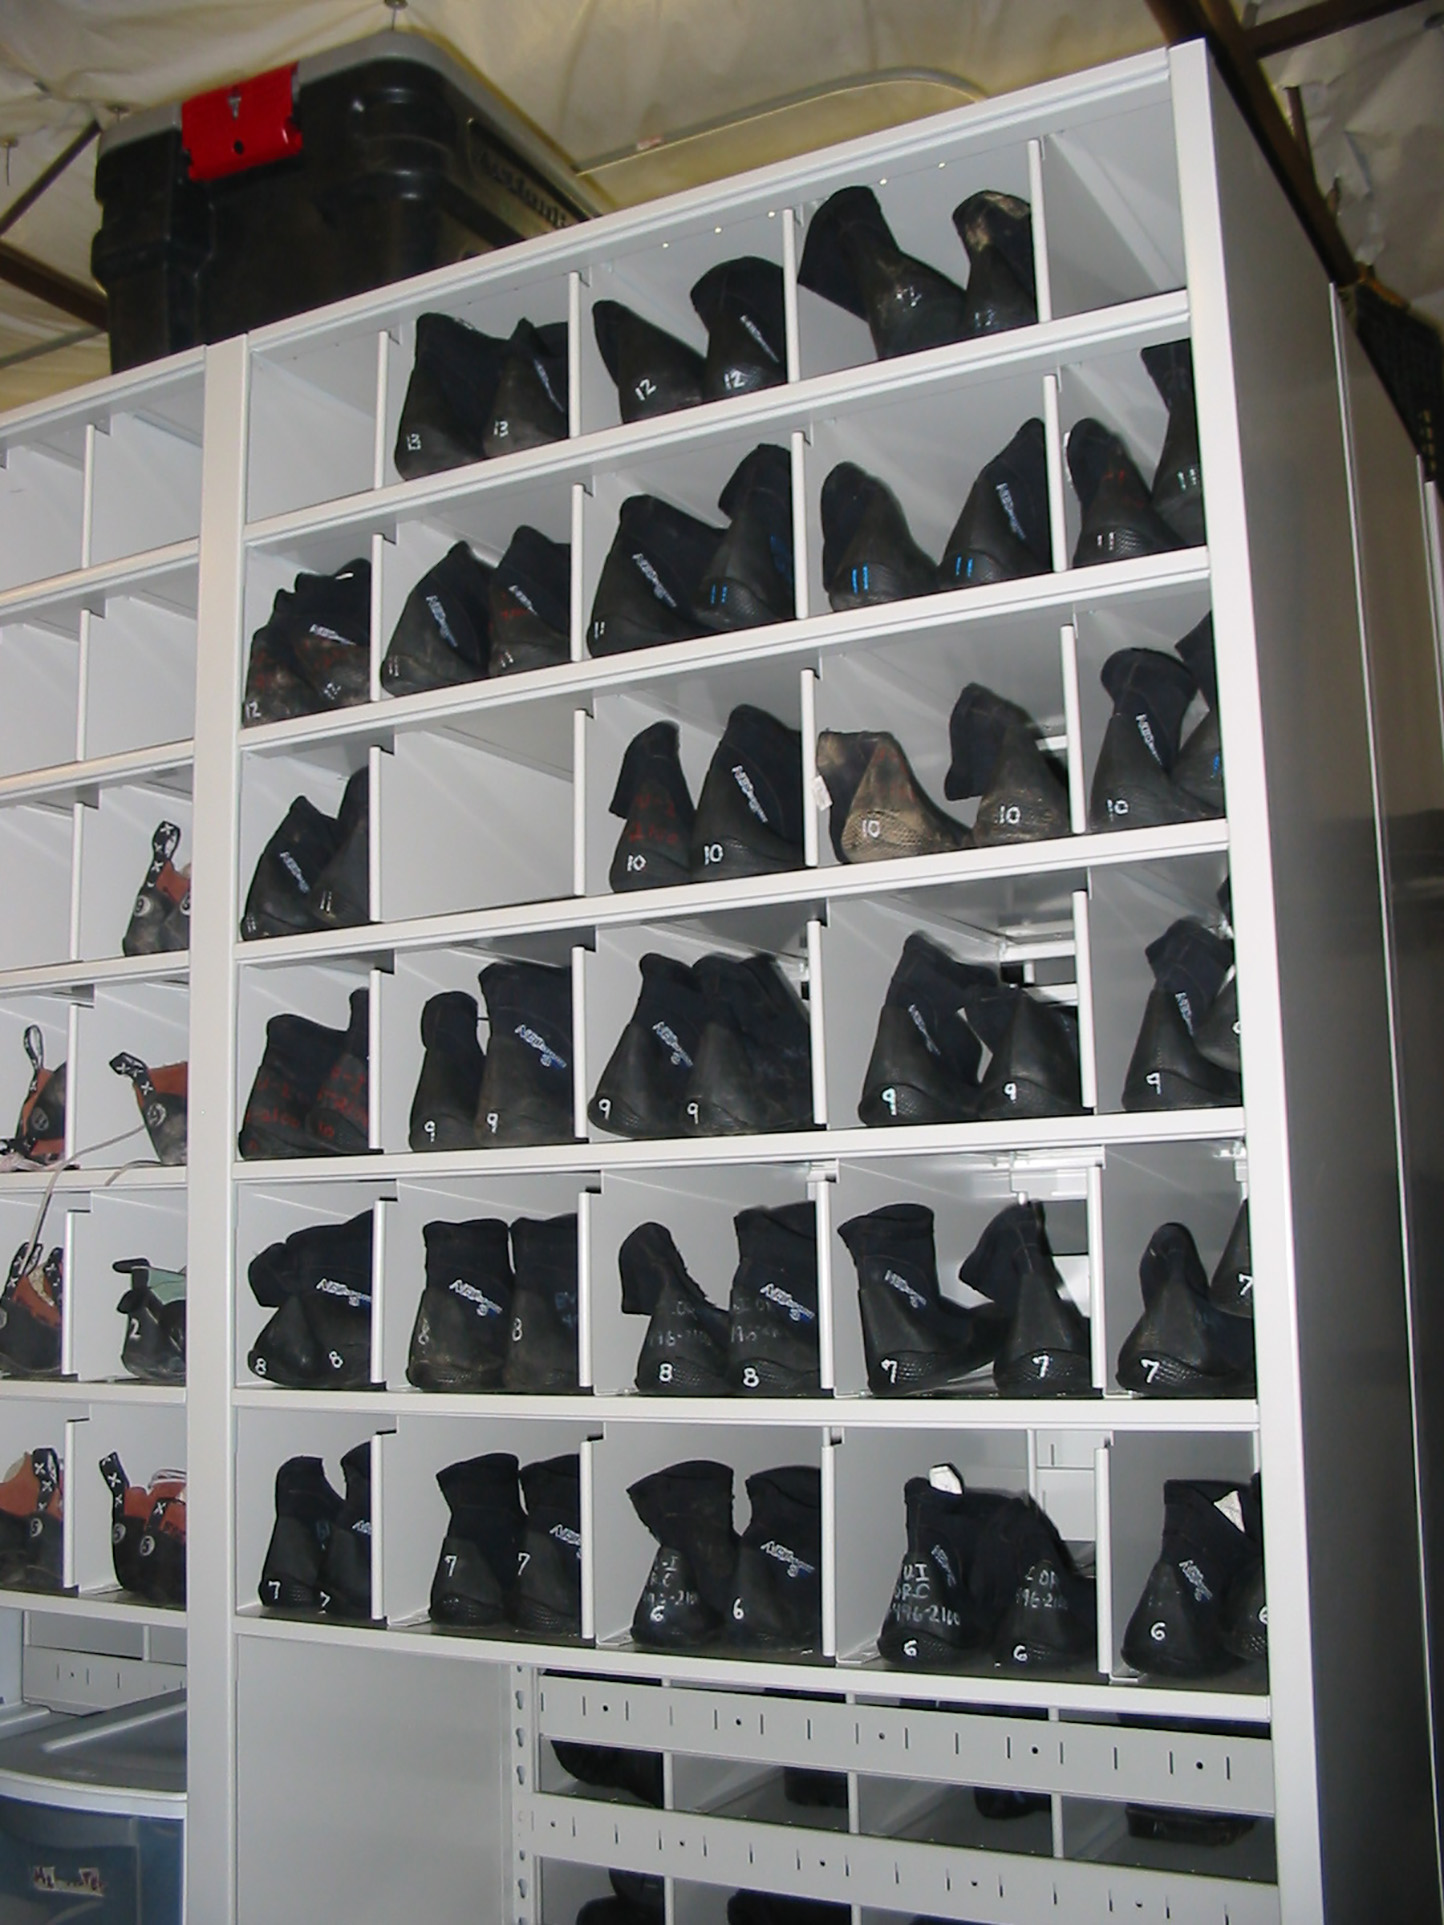 Shoe rental in bins on mobile storage system at Brigham Young University Outdoor Resource Center